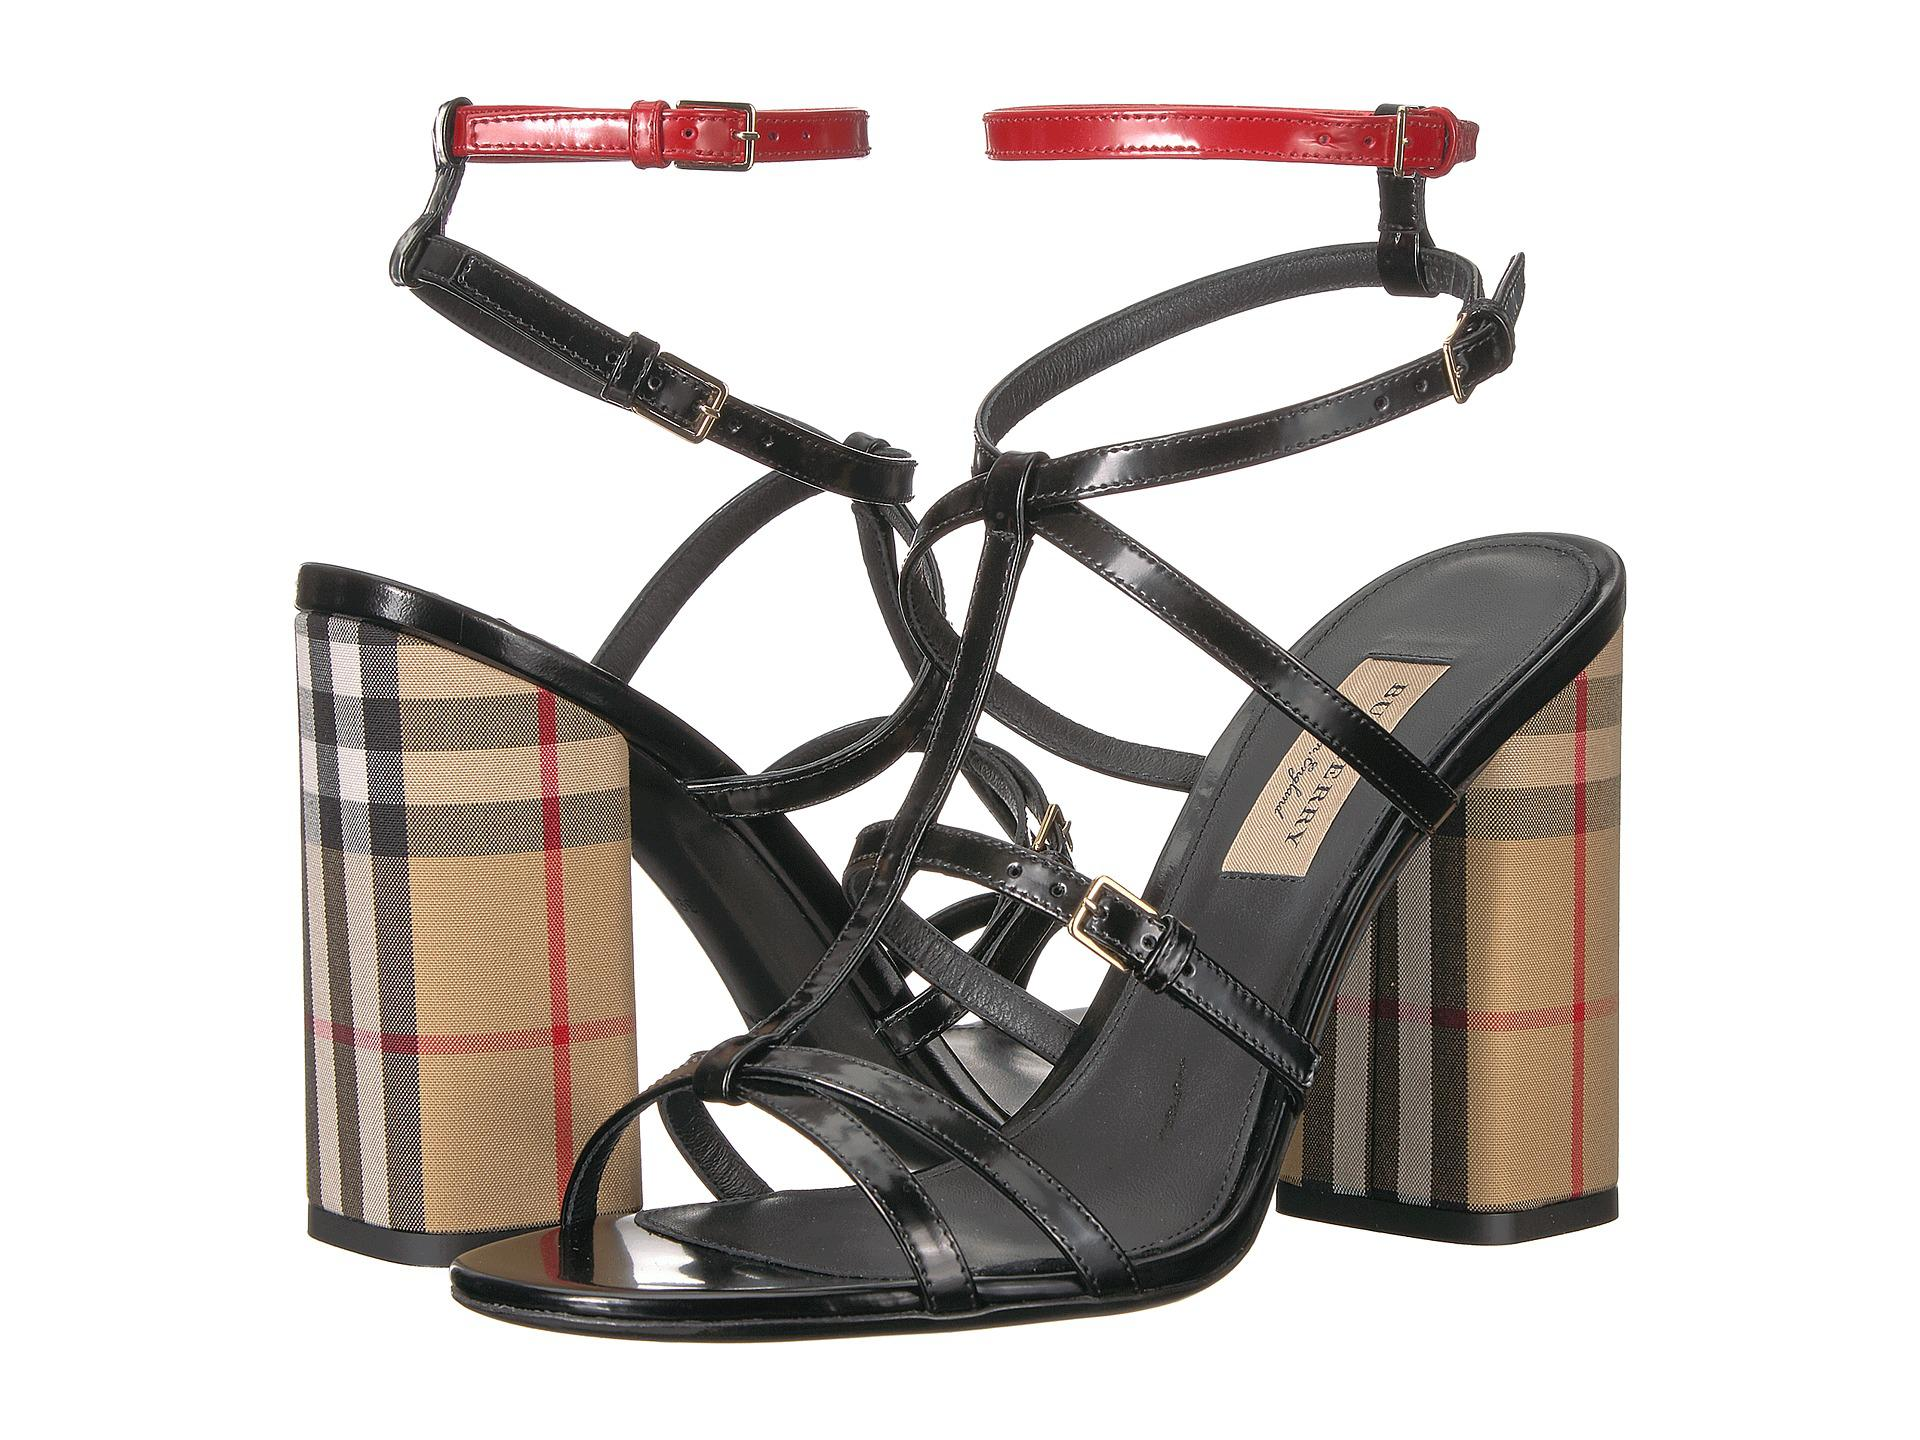 ada51376e4c74 Lyst - Burberry Vintage Check And Patent Leather Sandals in Black